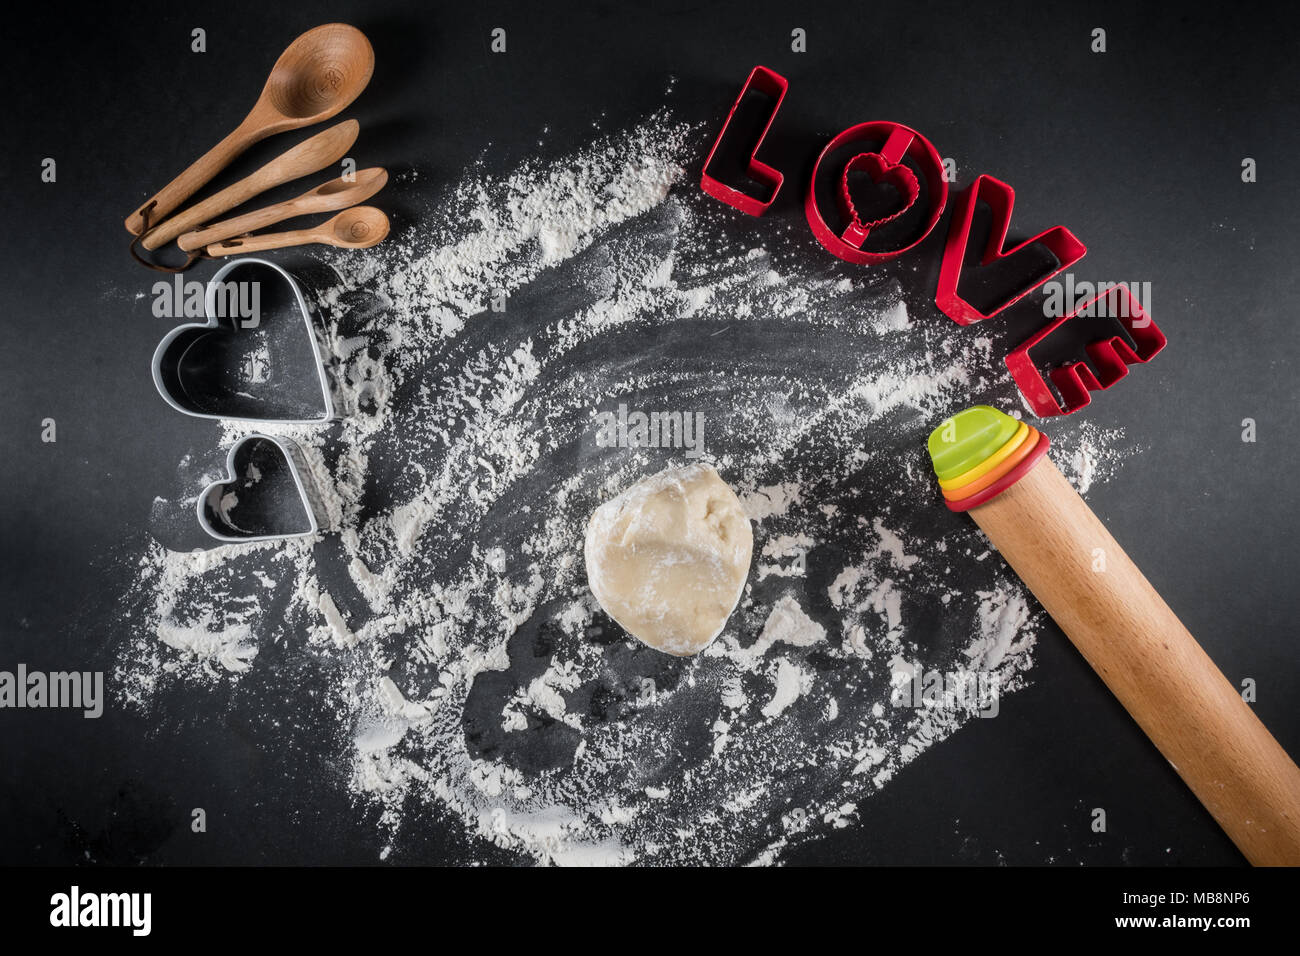 Cookie Dough Ball and Love Cookie Cutters on floured surface - Stock Image